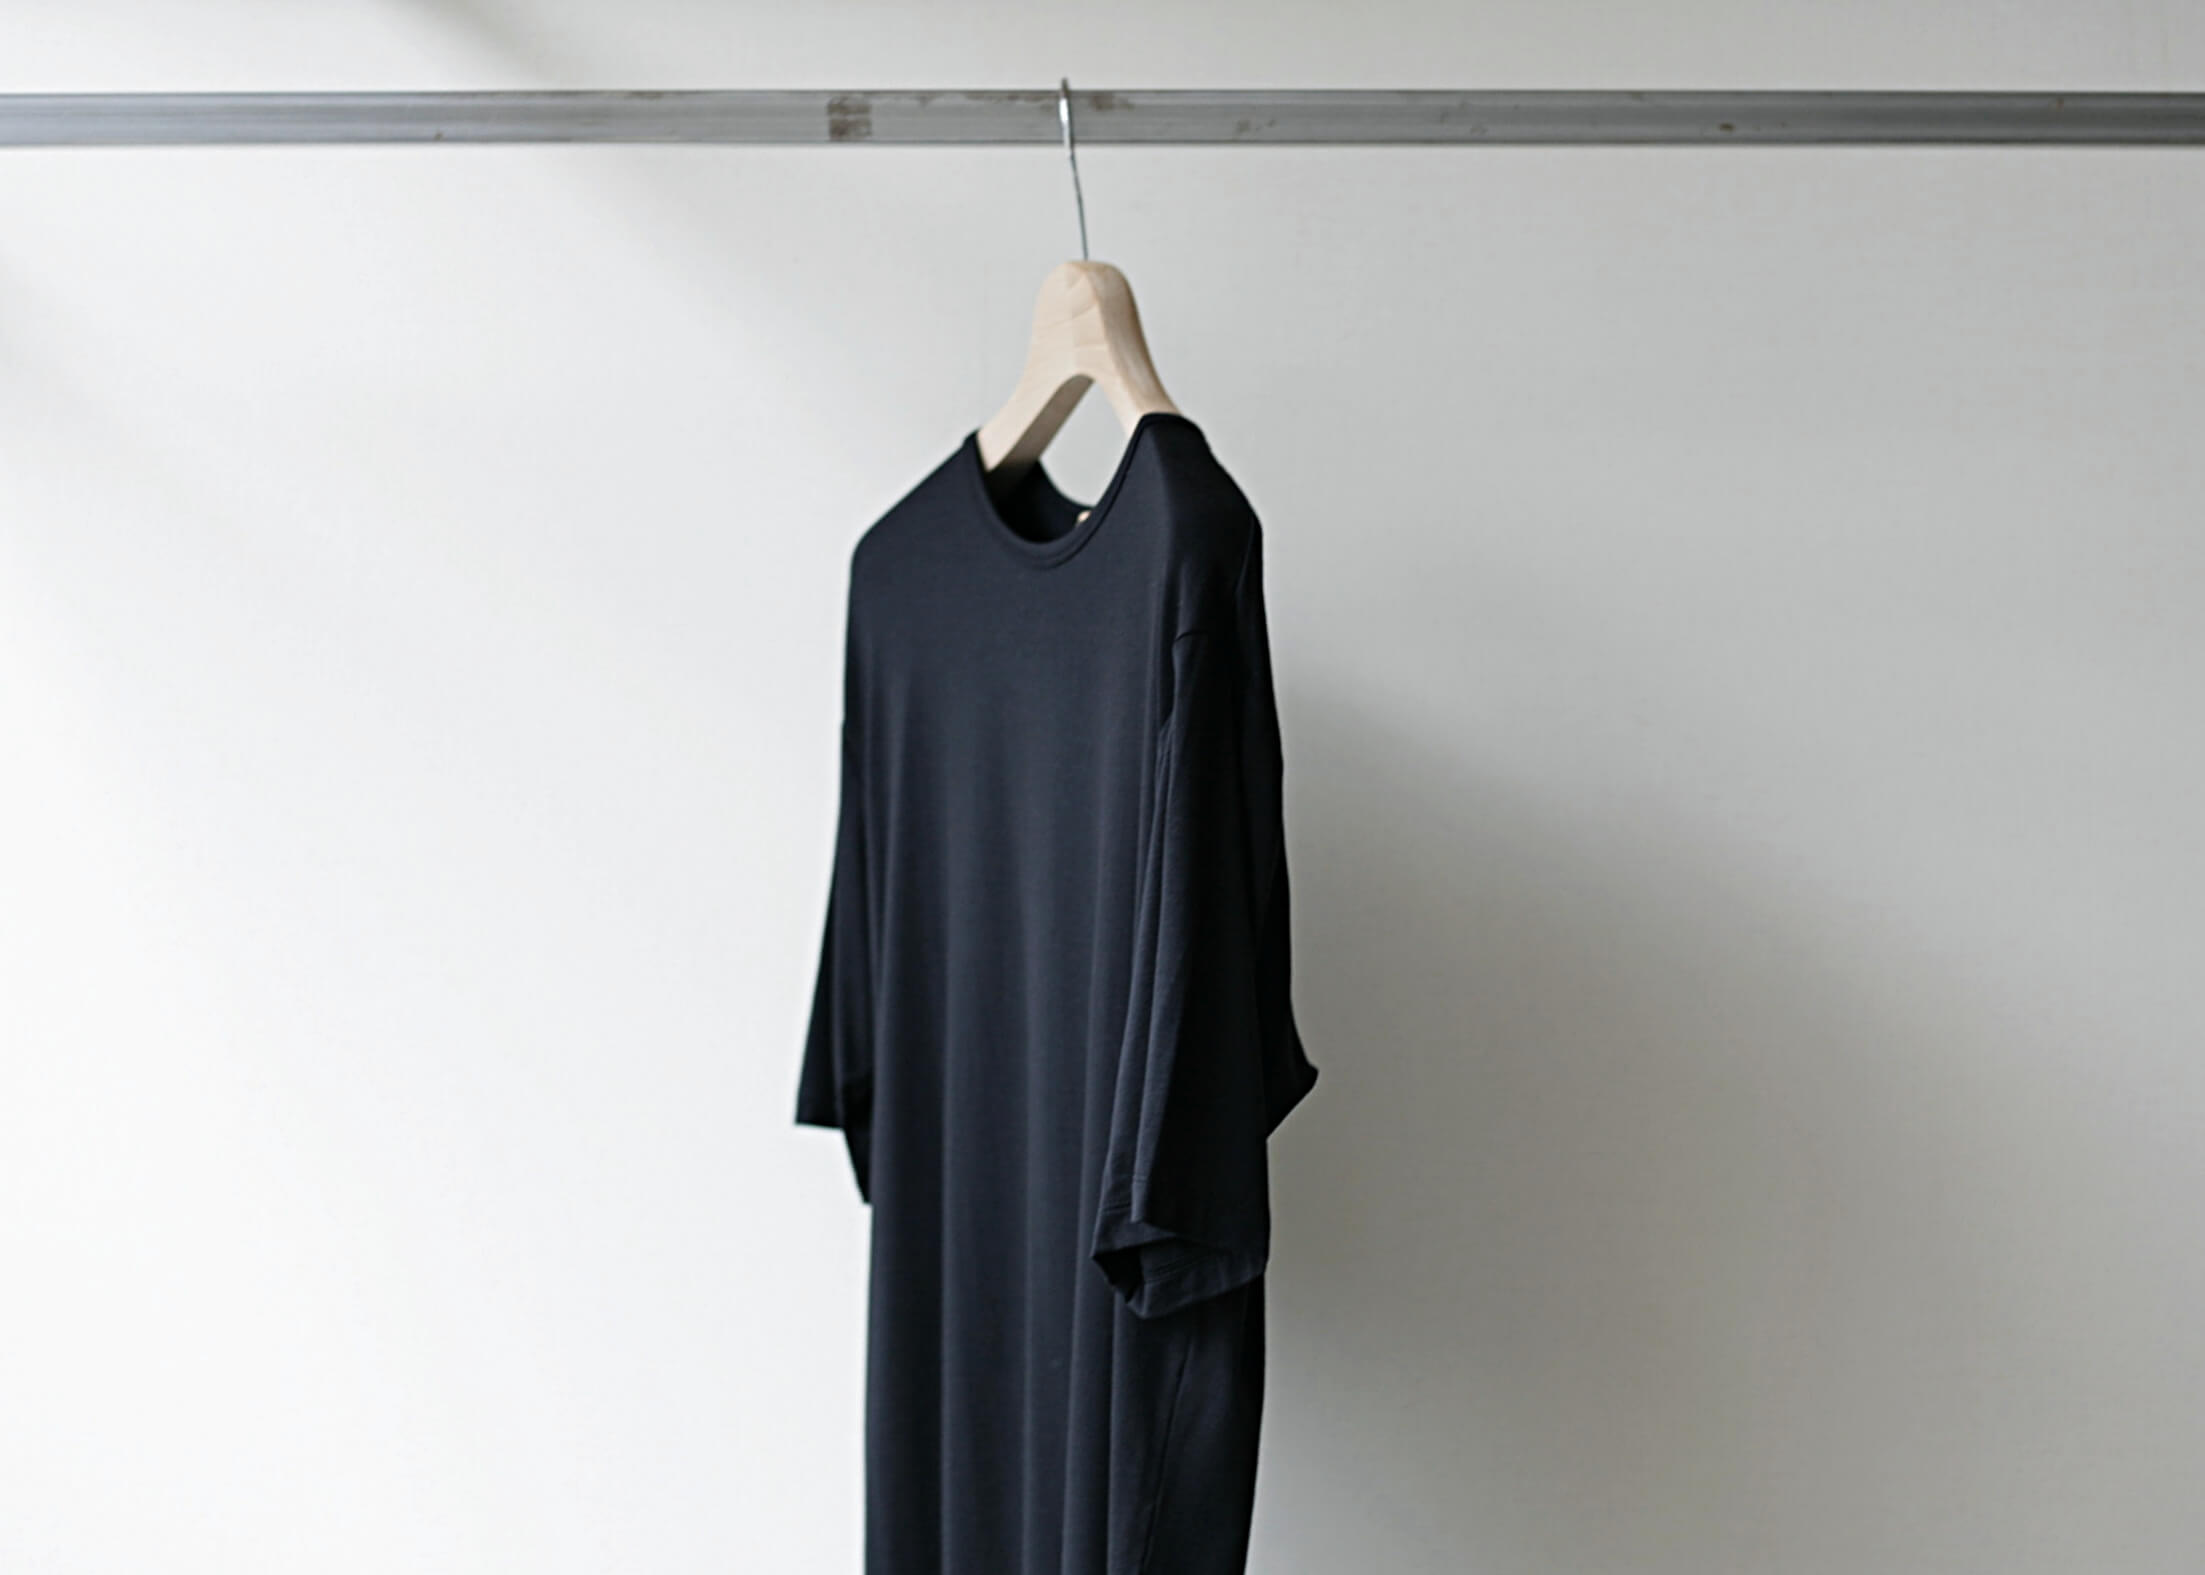 lamond tencel washable s/s black サイド上半身アップ